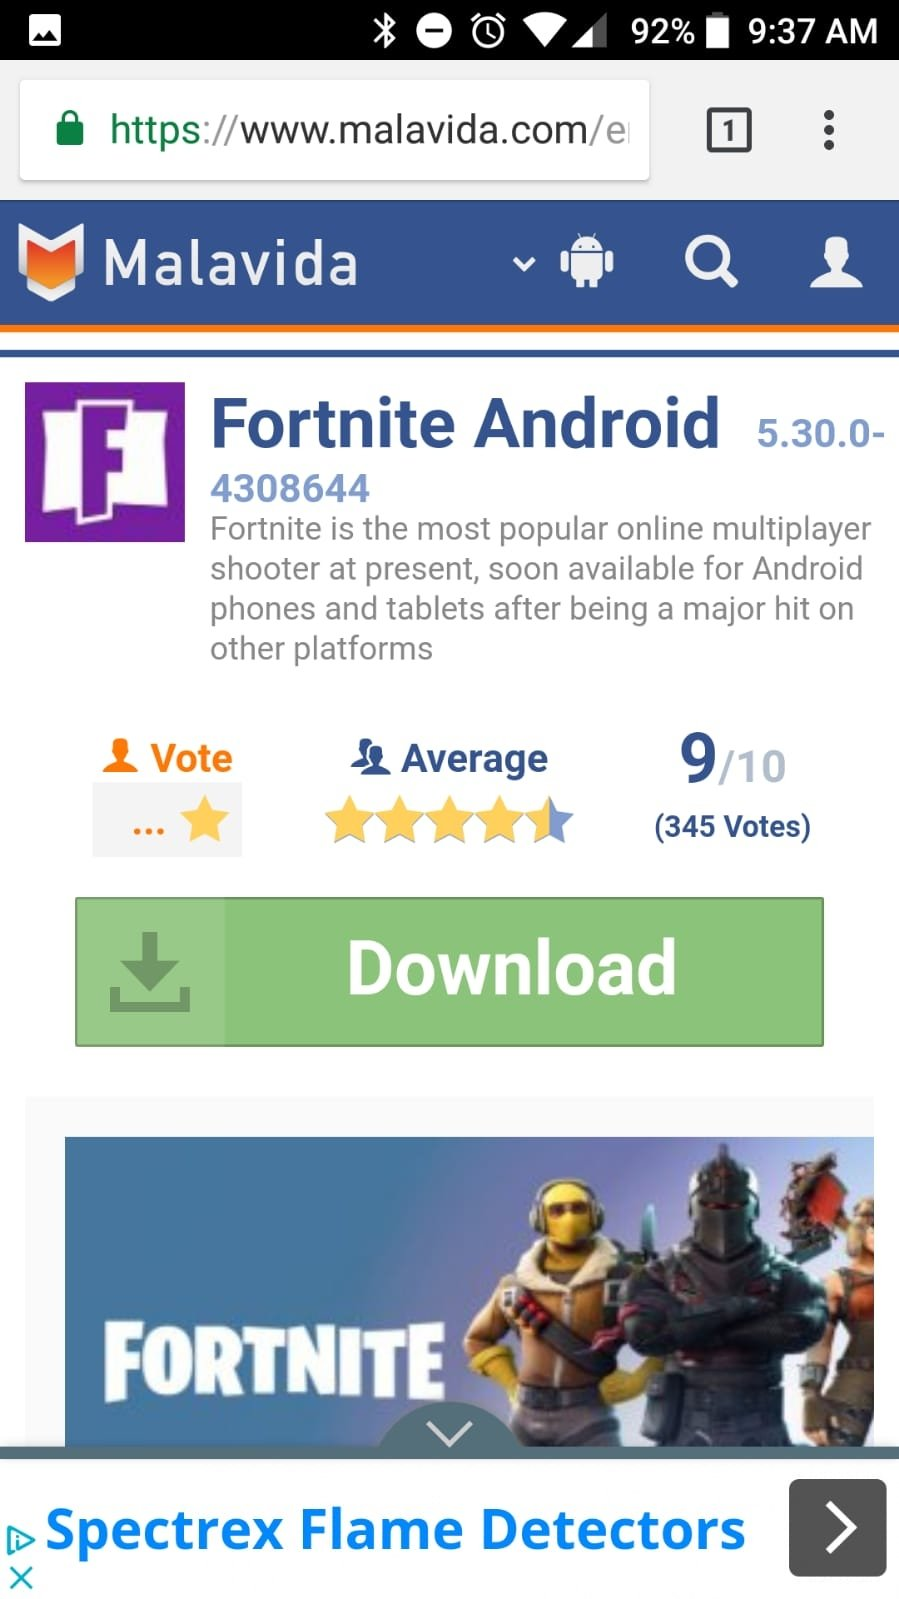 chrome apk download for android 4.4.2